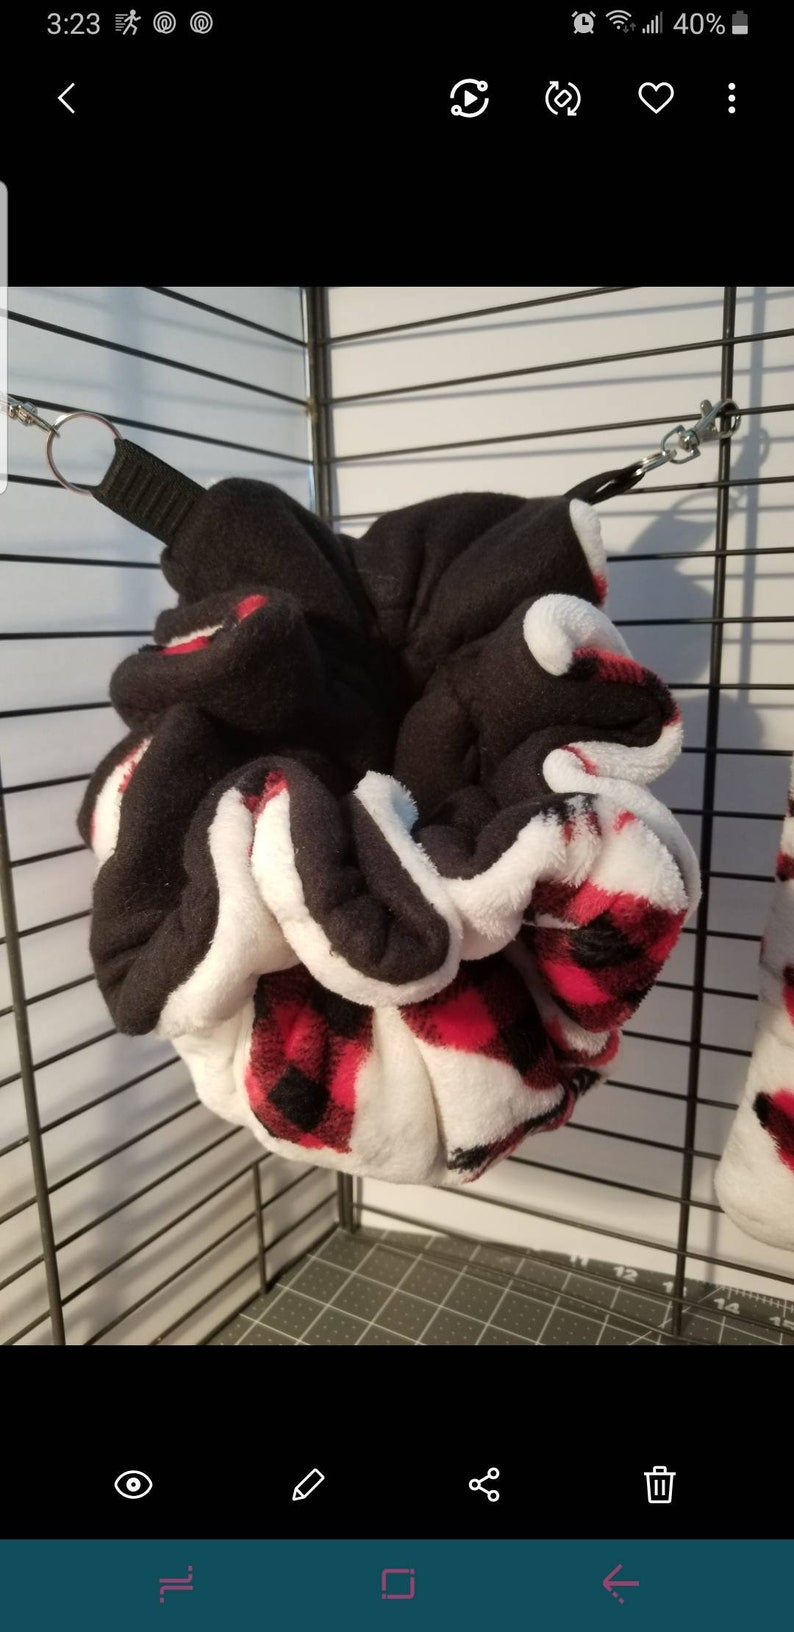 Ferrets for Rats and other Small Animals Sugar Gliders Multiple colors available. Hanging Snuggle Sack pouch Chinchillas